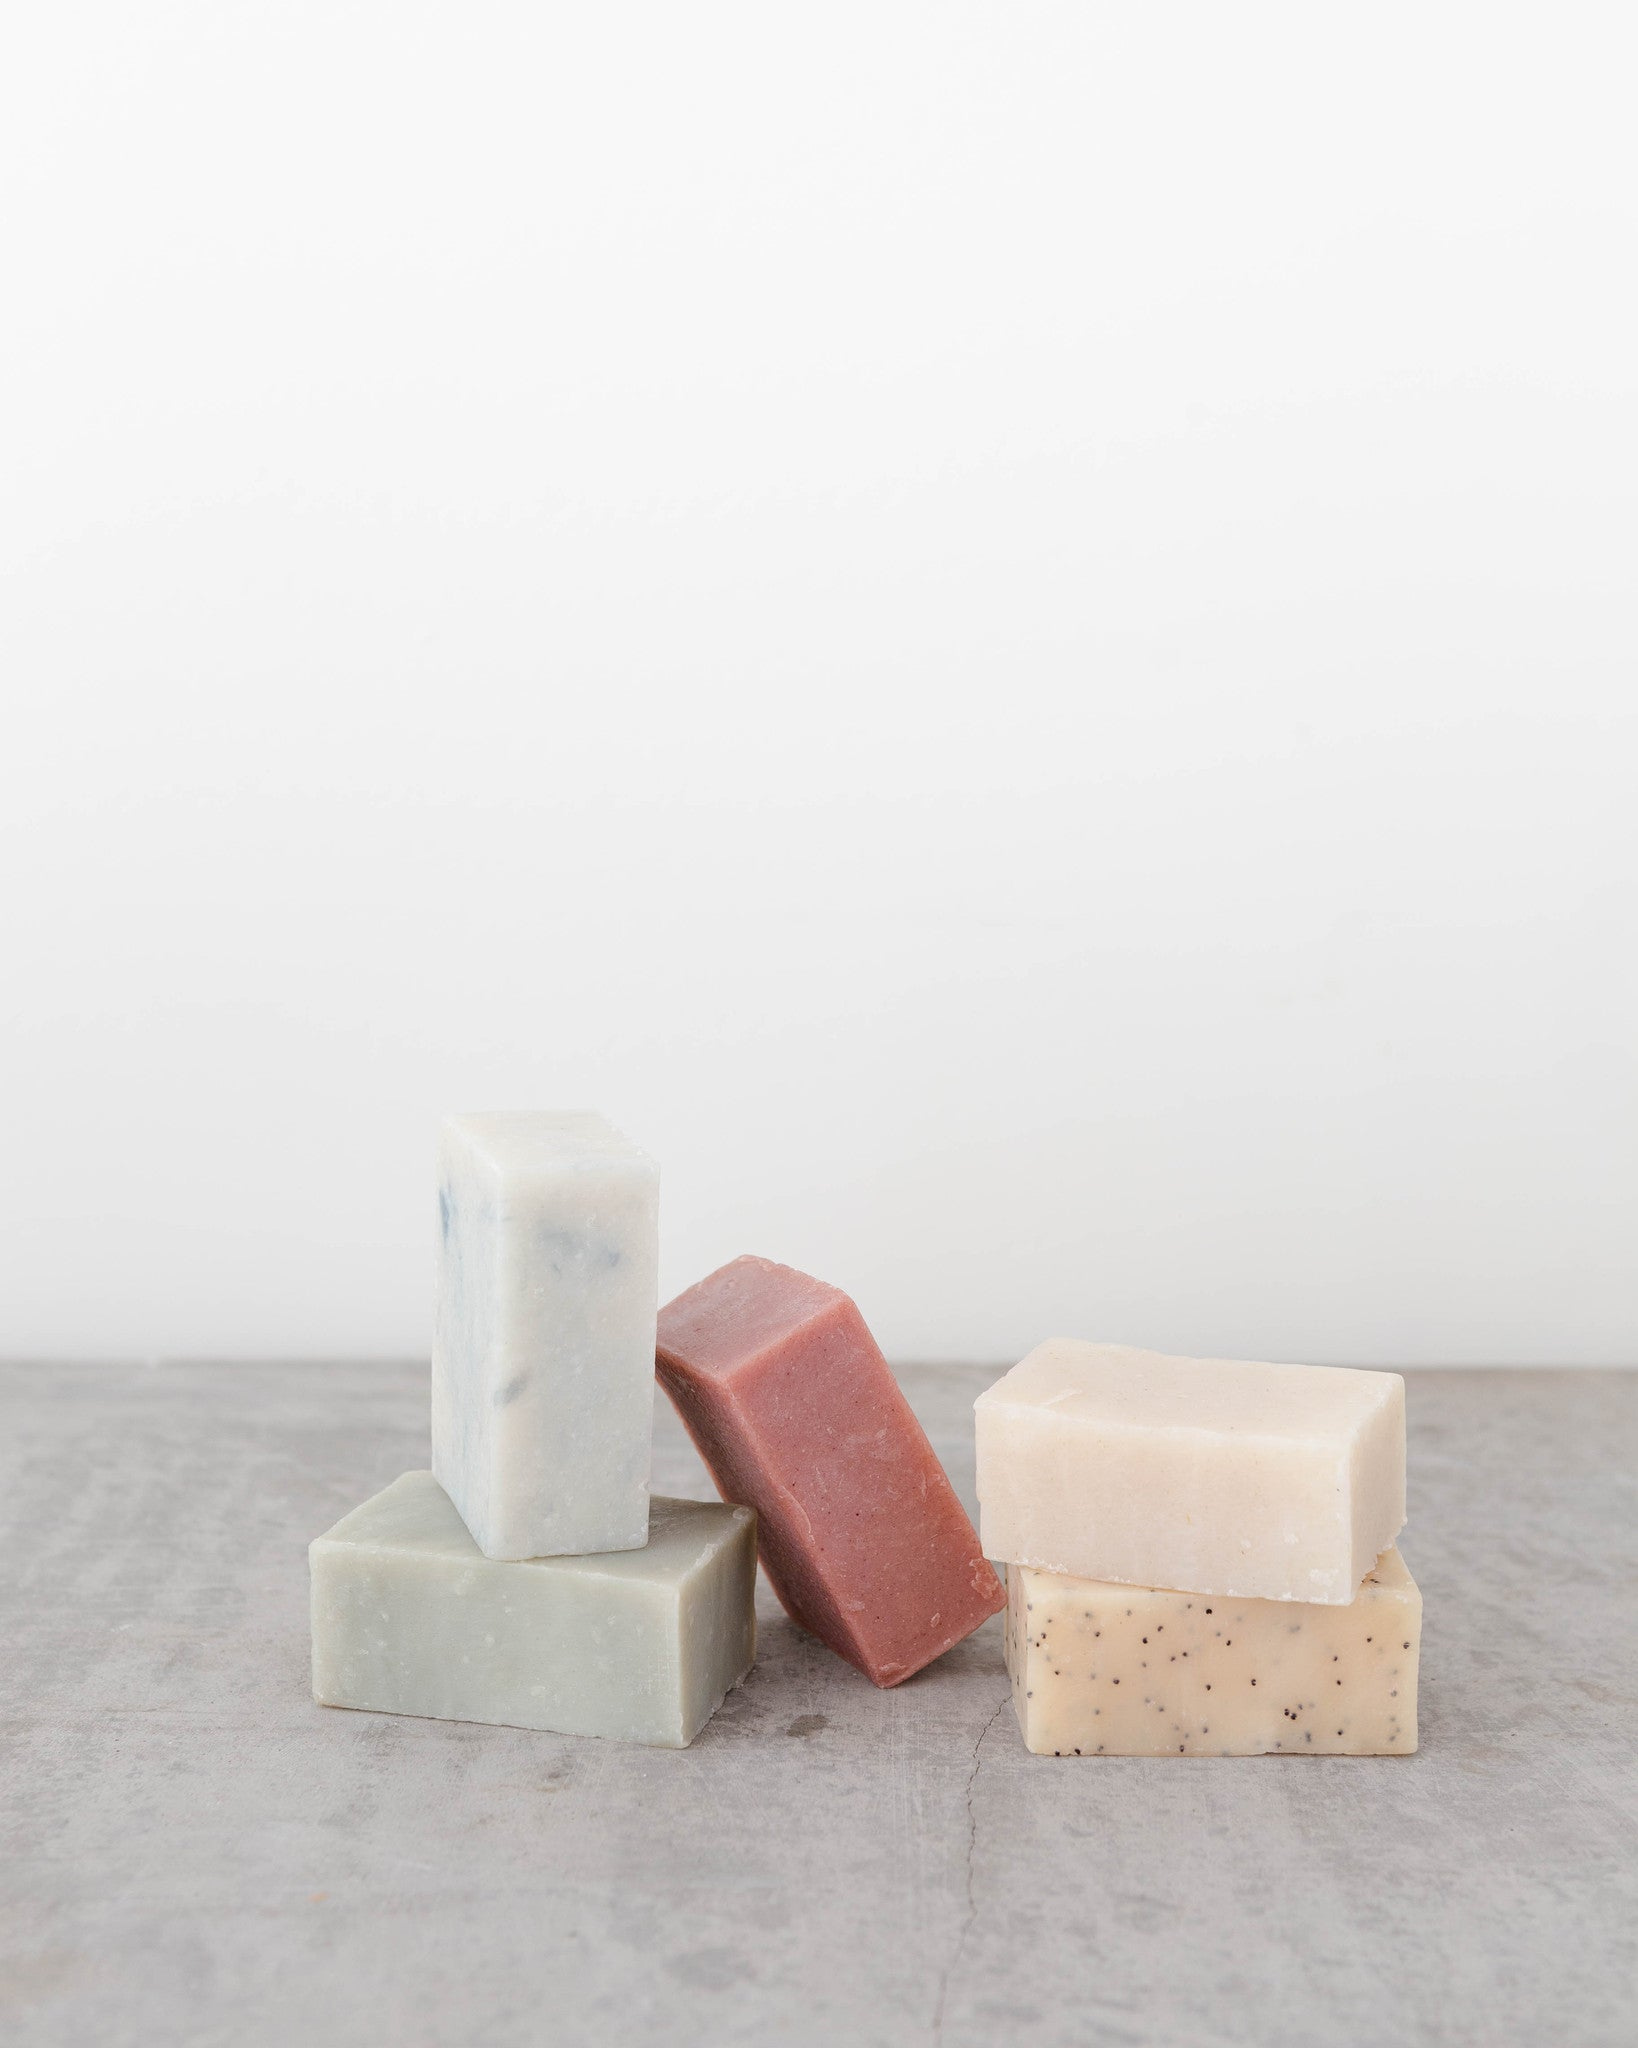 Inspired by where the fresh water pours into the fjord, this bar of soap is fantastically refreshing. Cooling peppermint helps soothe aching muscles, kaolin clay gives a silky smooth lather, and the added pumice exfoliates to leave your skin glowing.